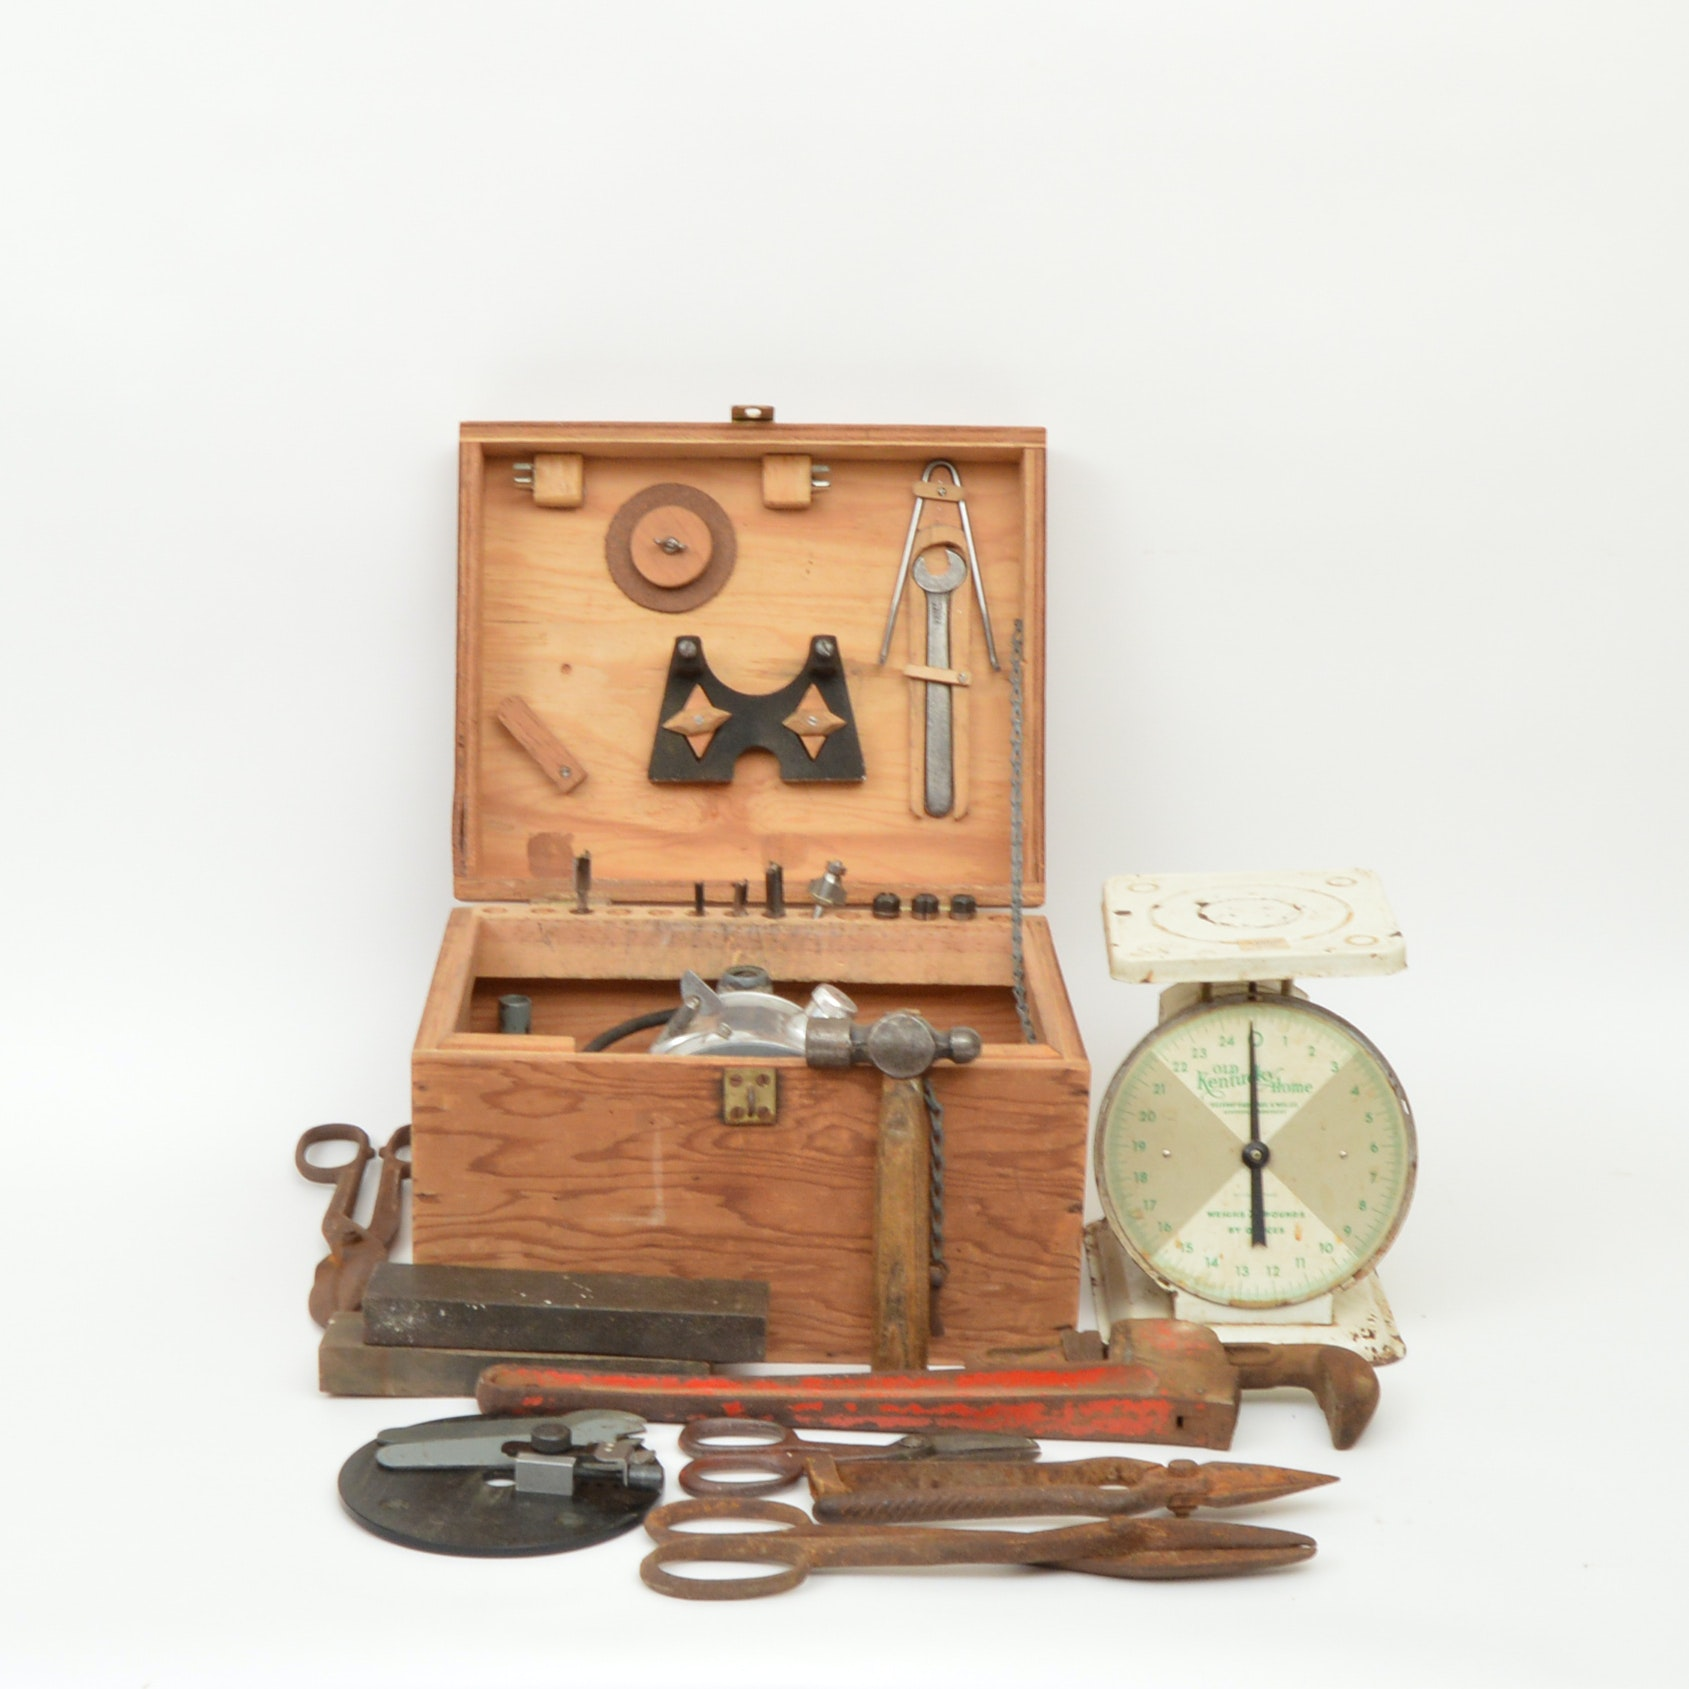 Vintage Router and Shop Tools